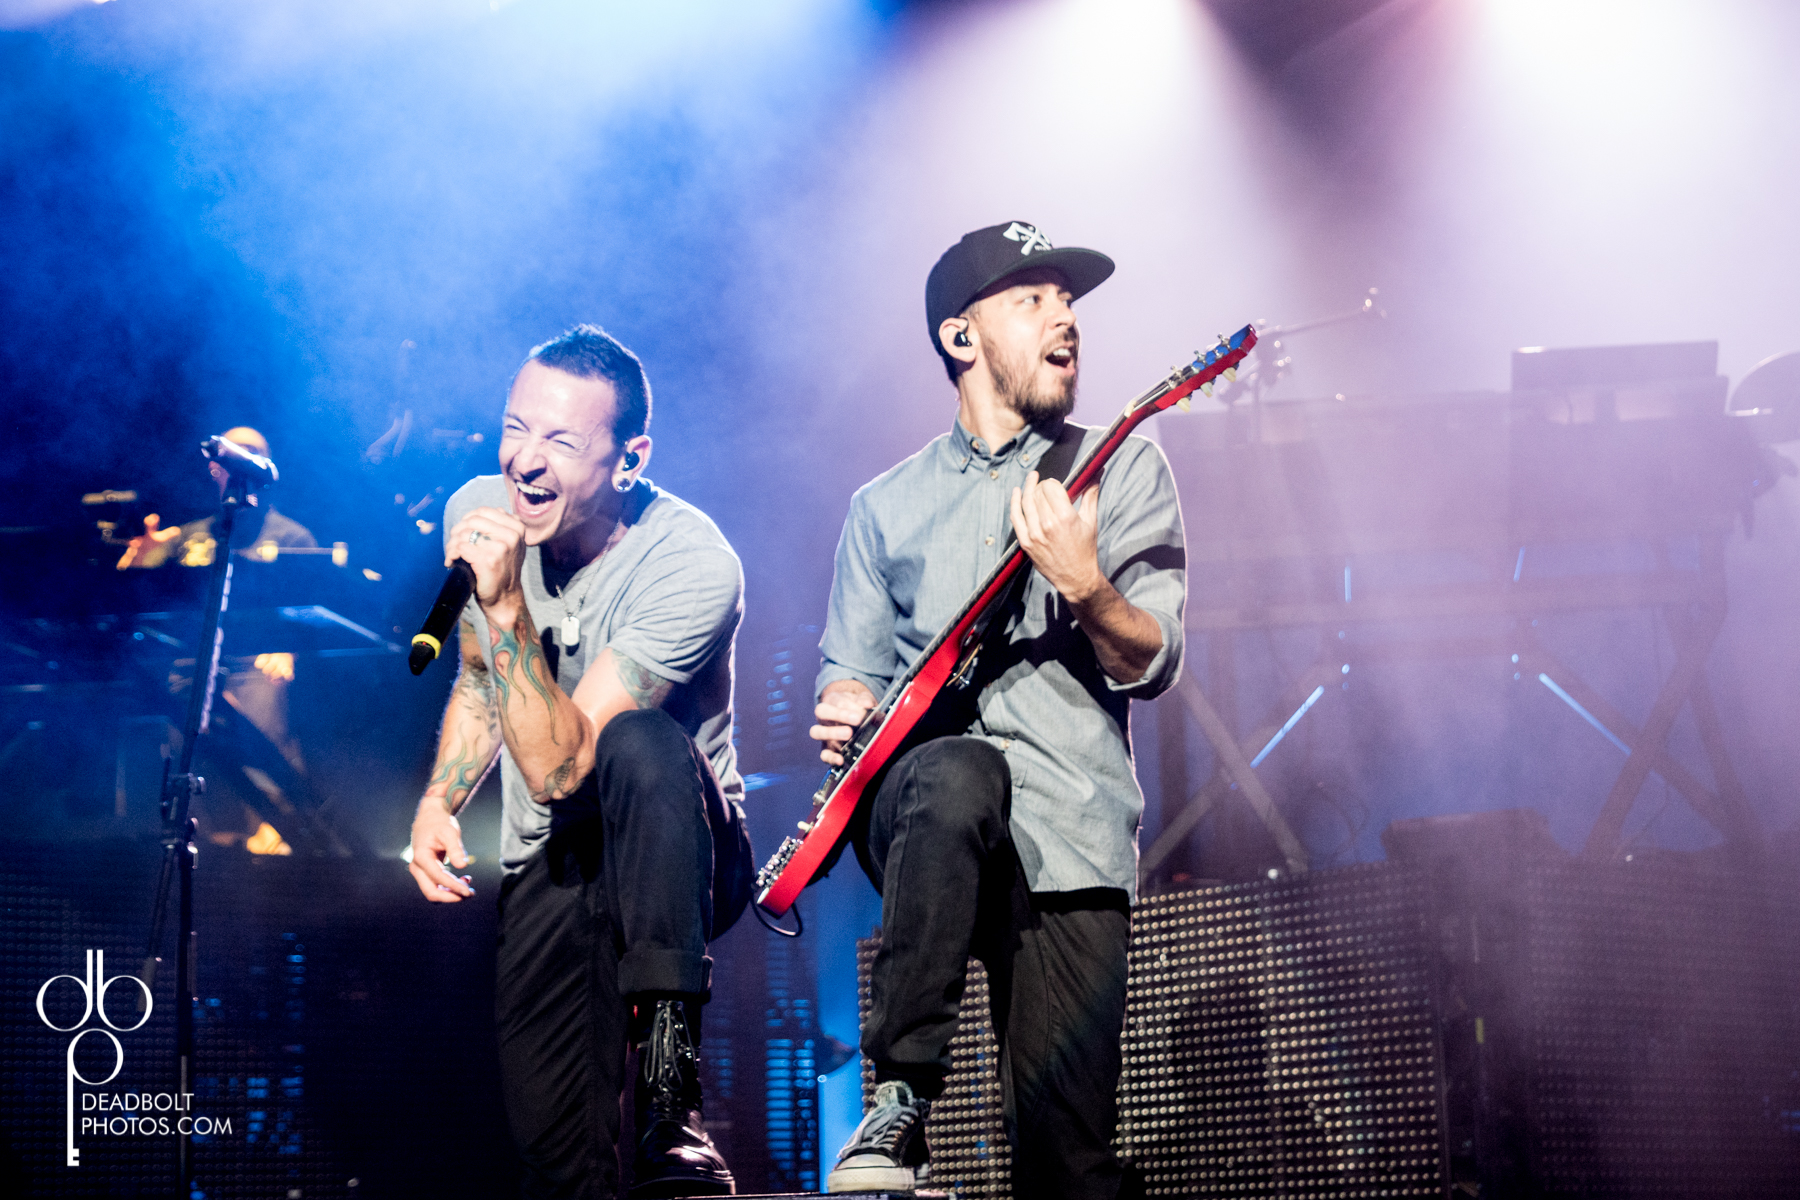 Chester and Mike of LP